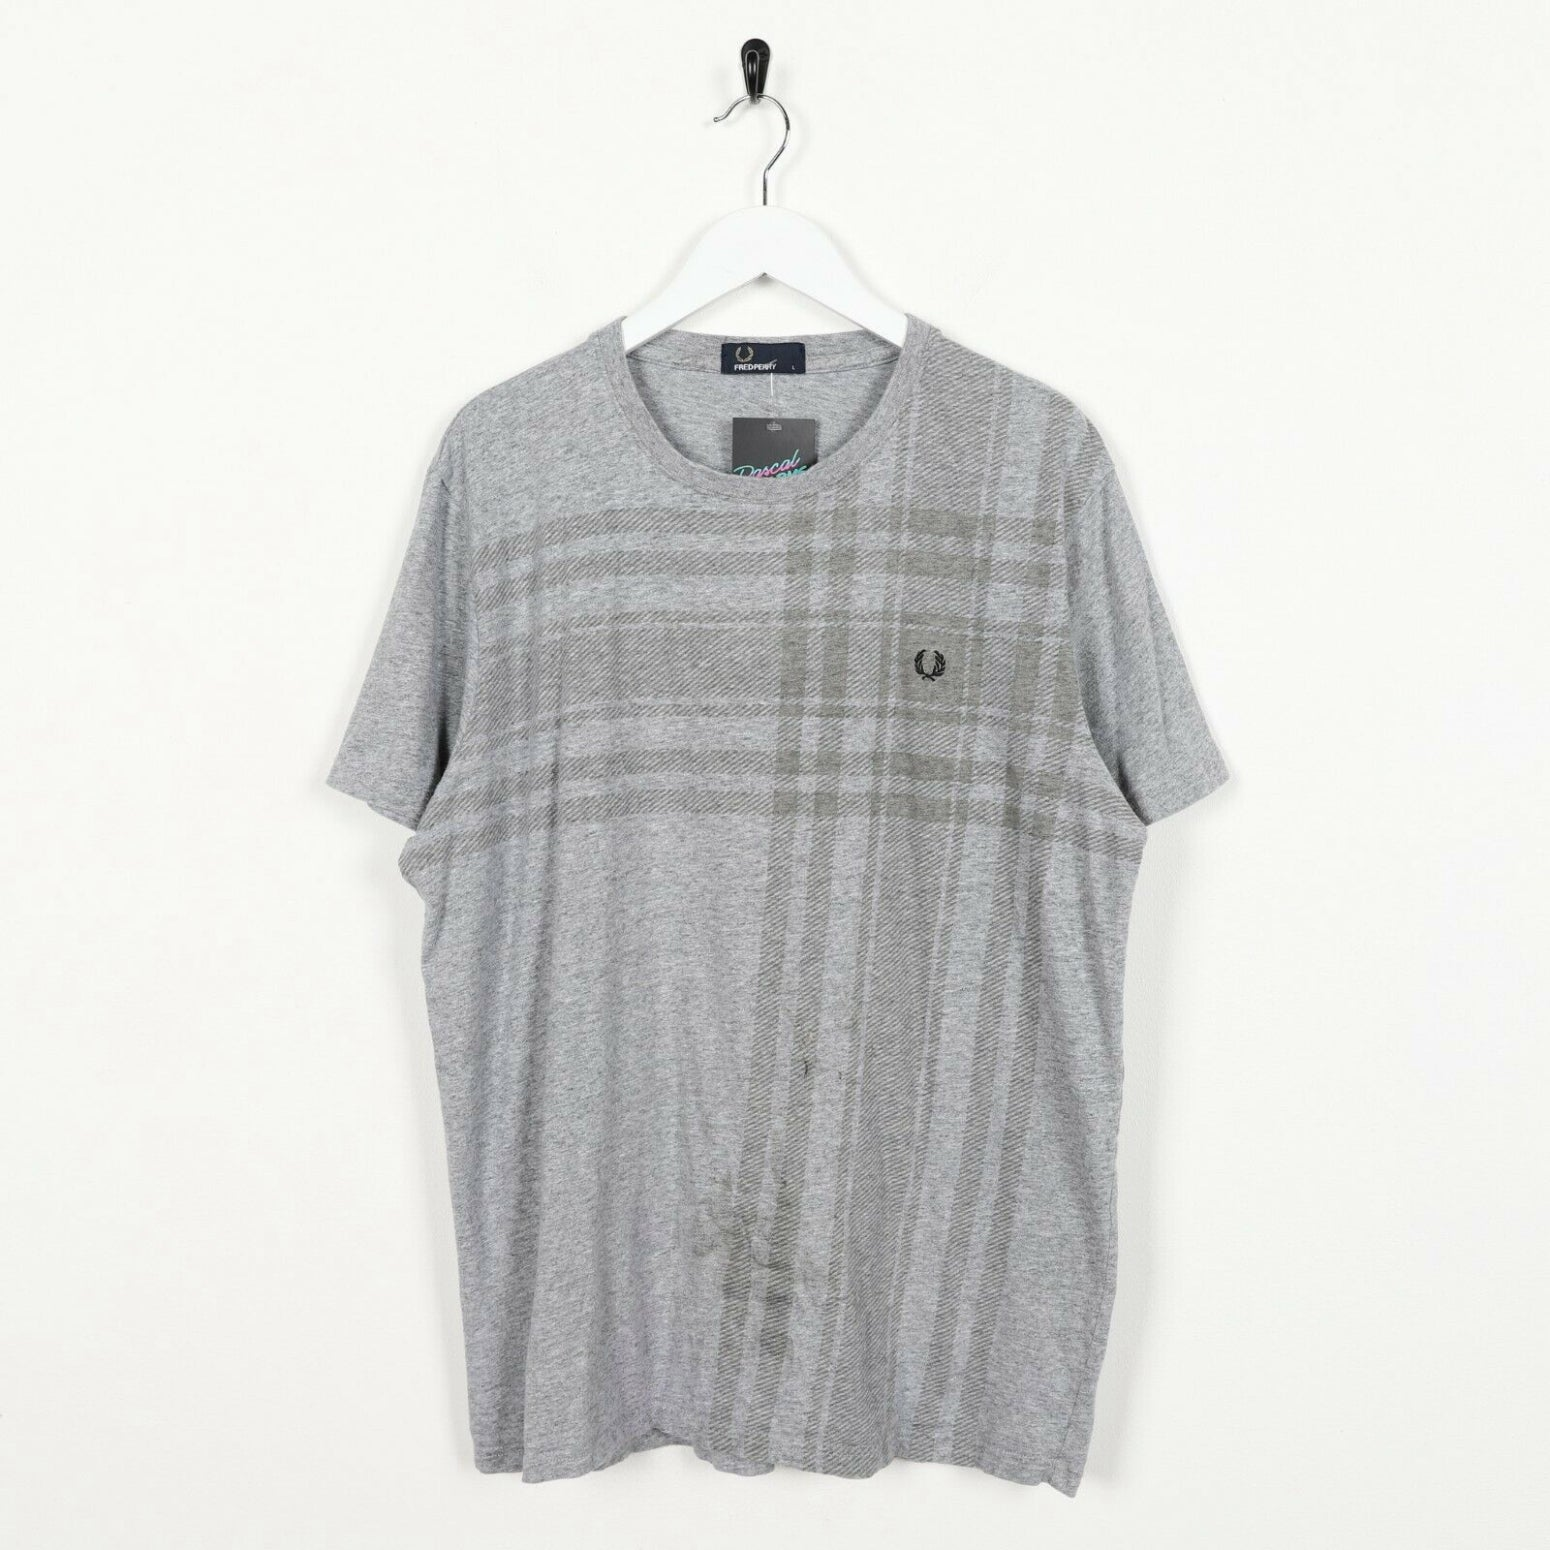 Vintage FRED PERRY Small Logo Check T Shirt Tee Grey Large L